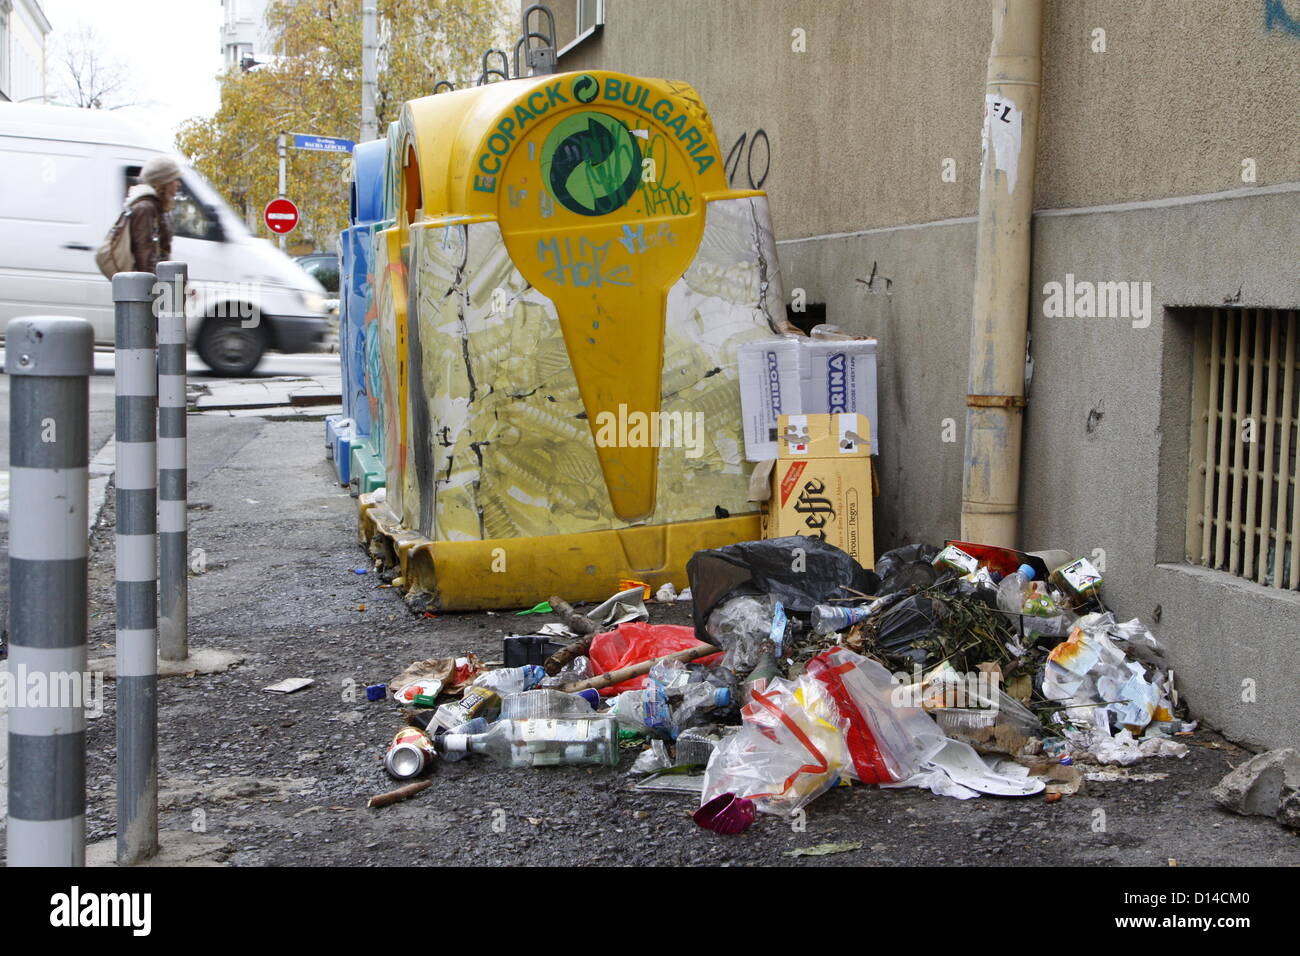 Sofia, Bulgaria. 6th December 2012. Pile of rubbish beside recycling containers in central Sofia. Although waste - Stock Image